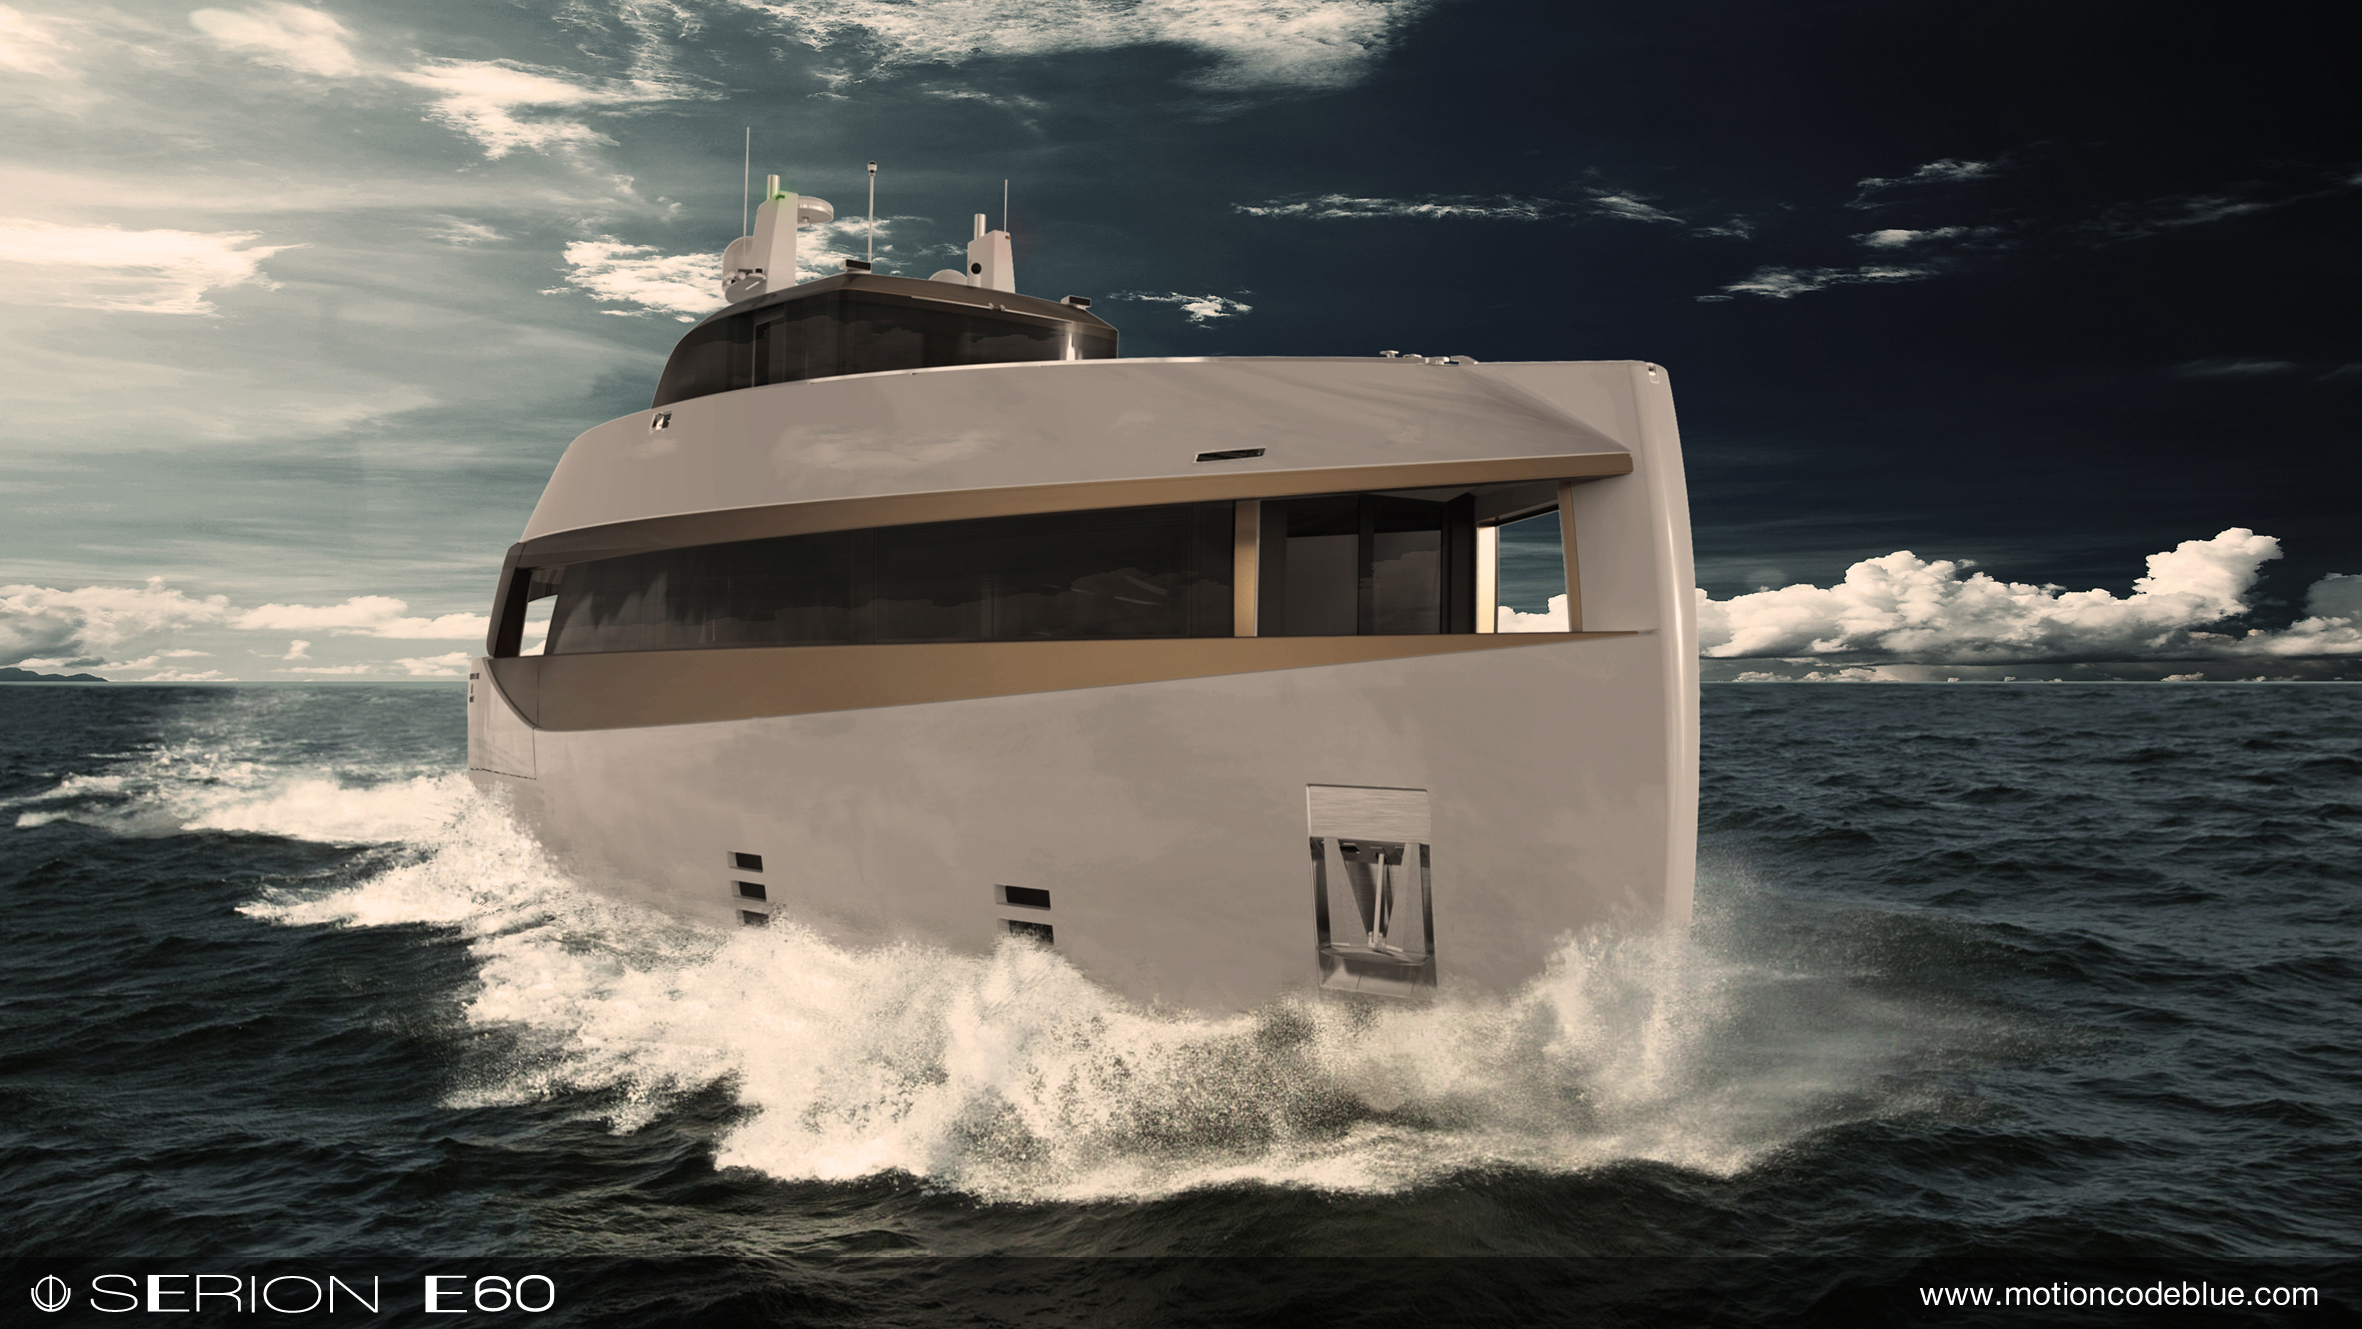 serion_e_60_yacht_by_motion_code_blue_1_